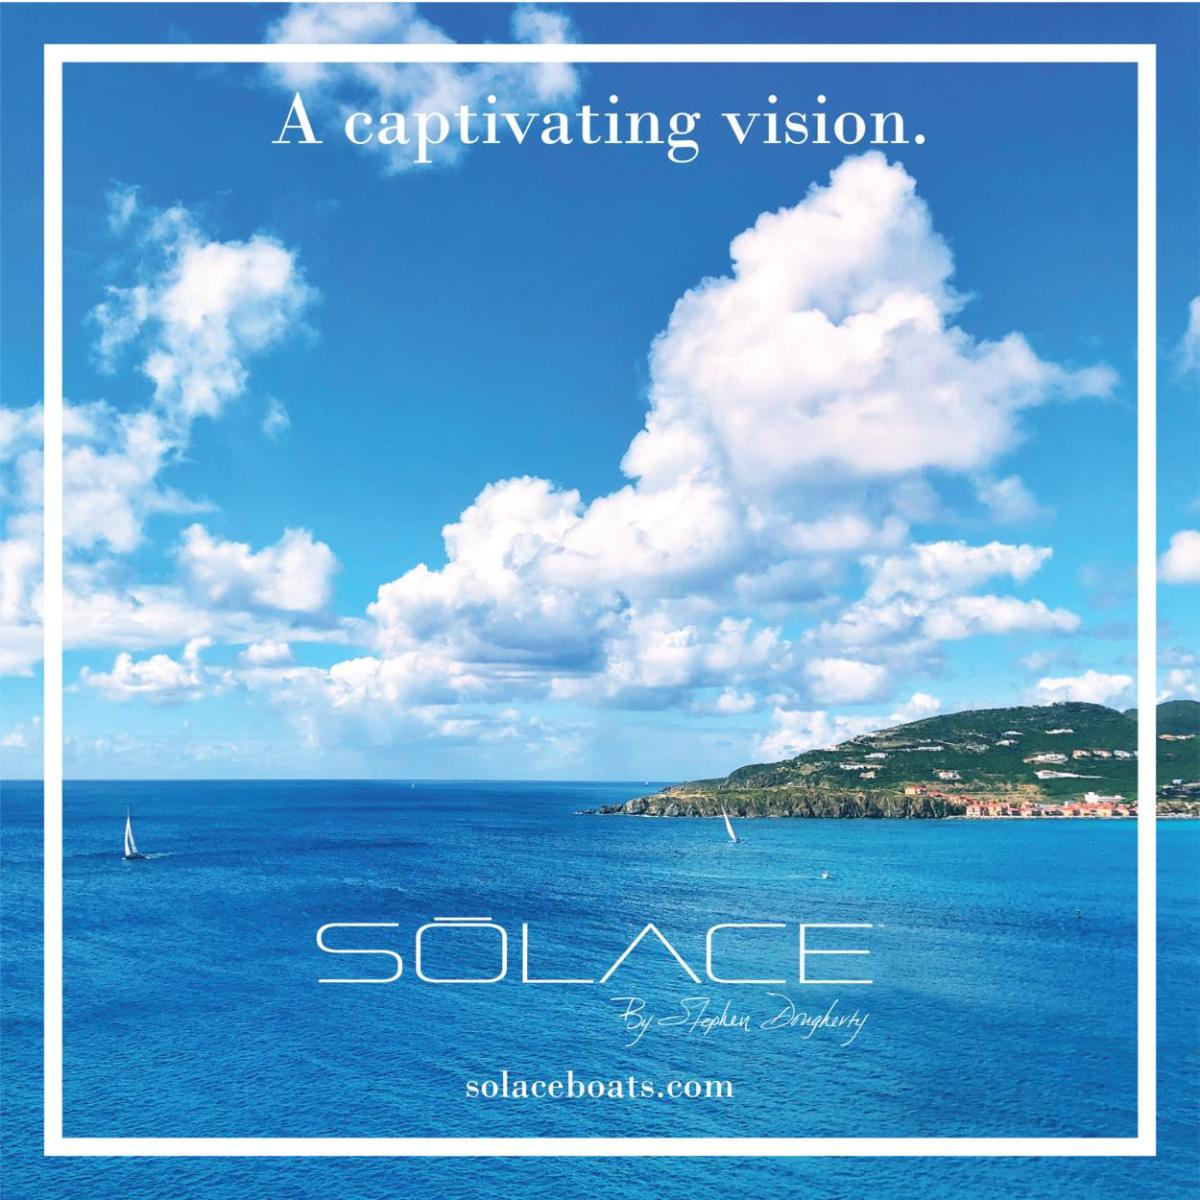 Solace=USEThis